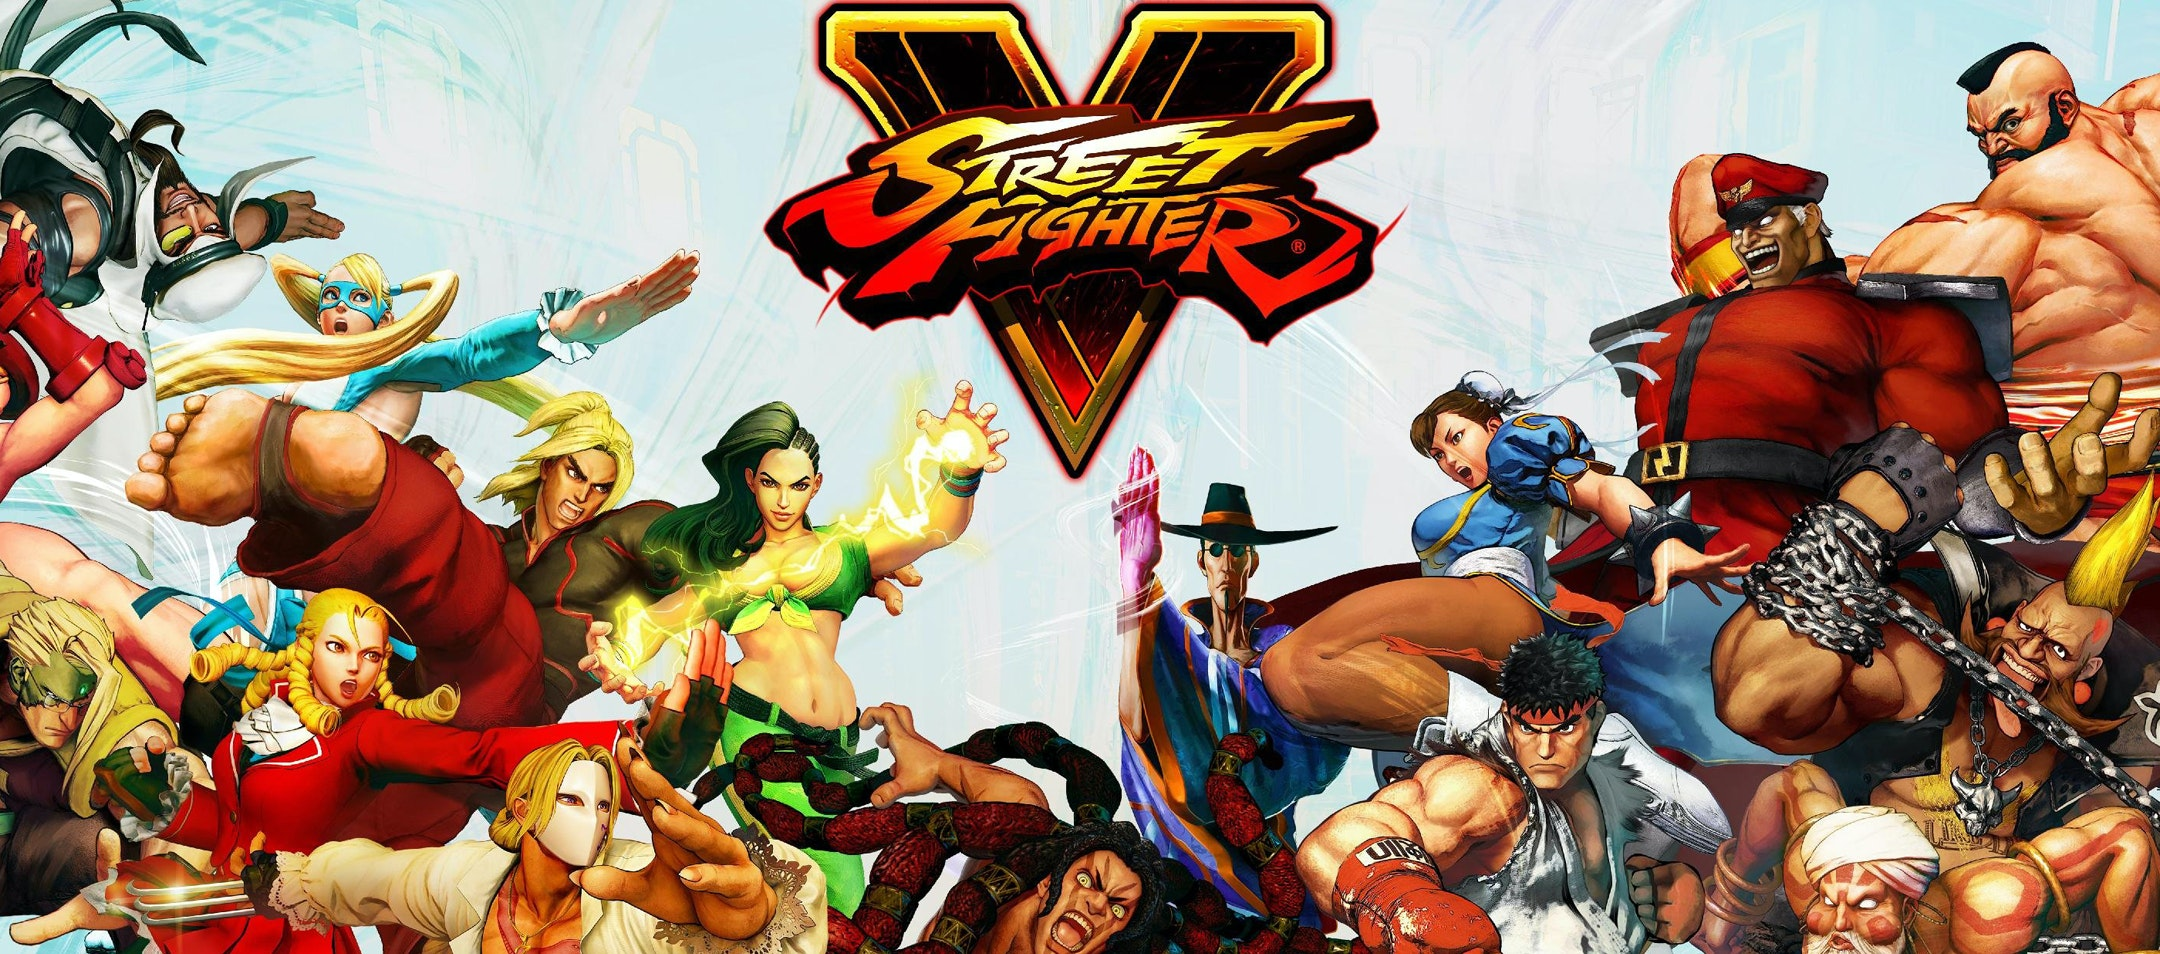 5 Dlc Character Predictions For Street Fighter V S 40th Roster Spot One37pm